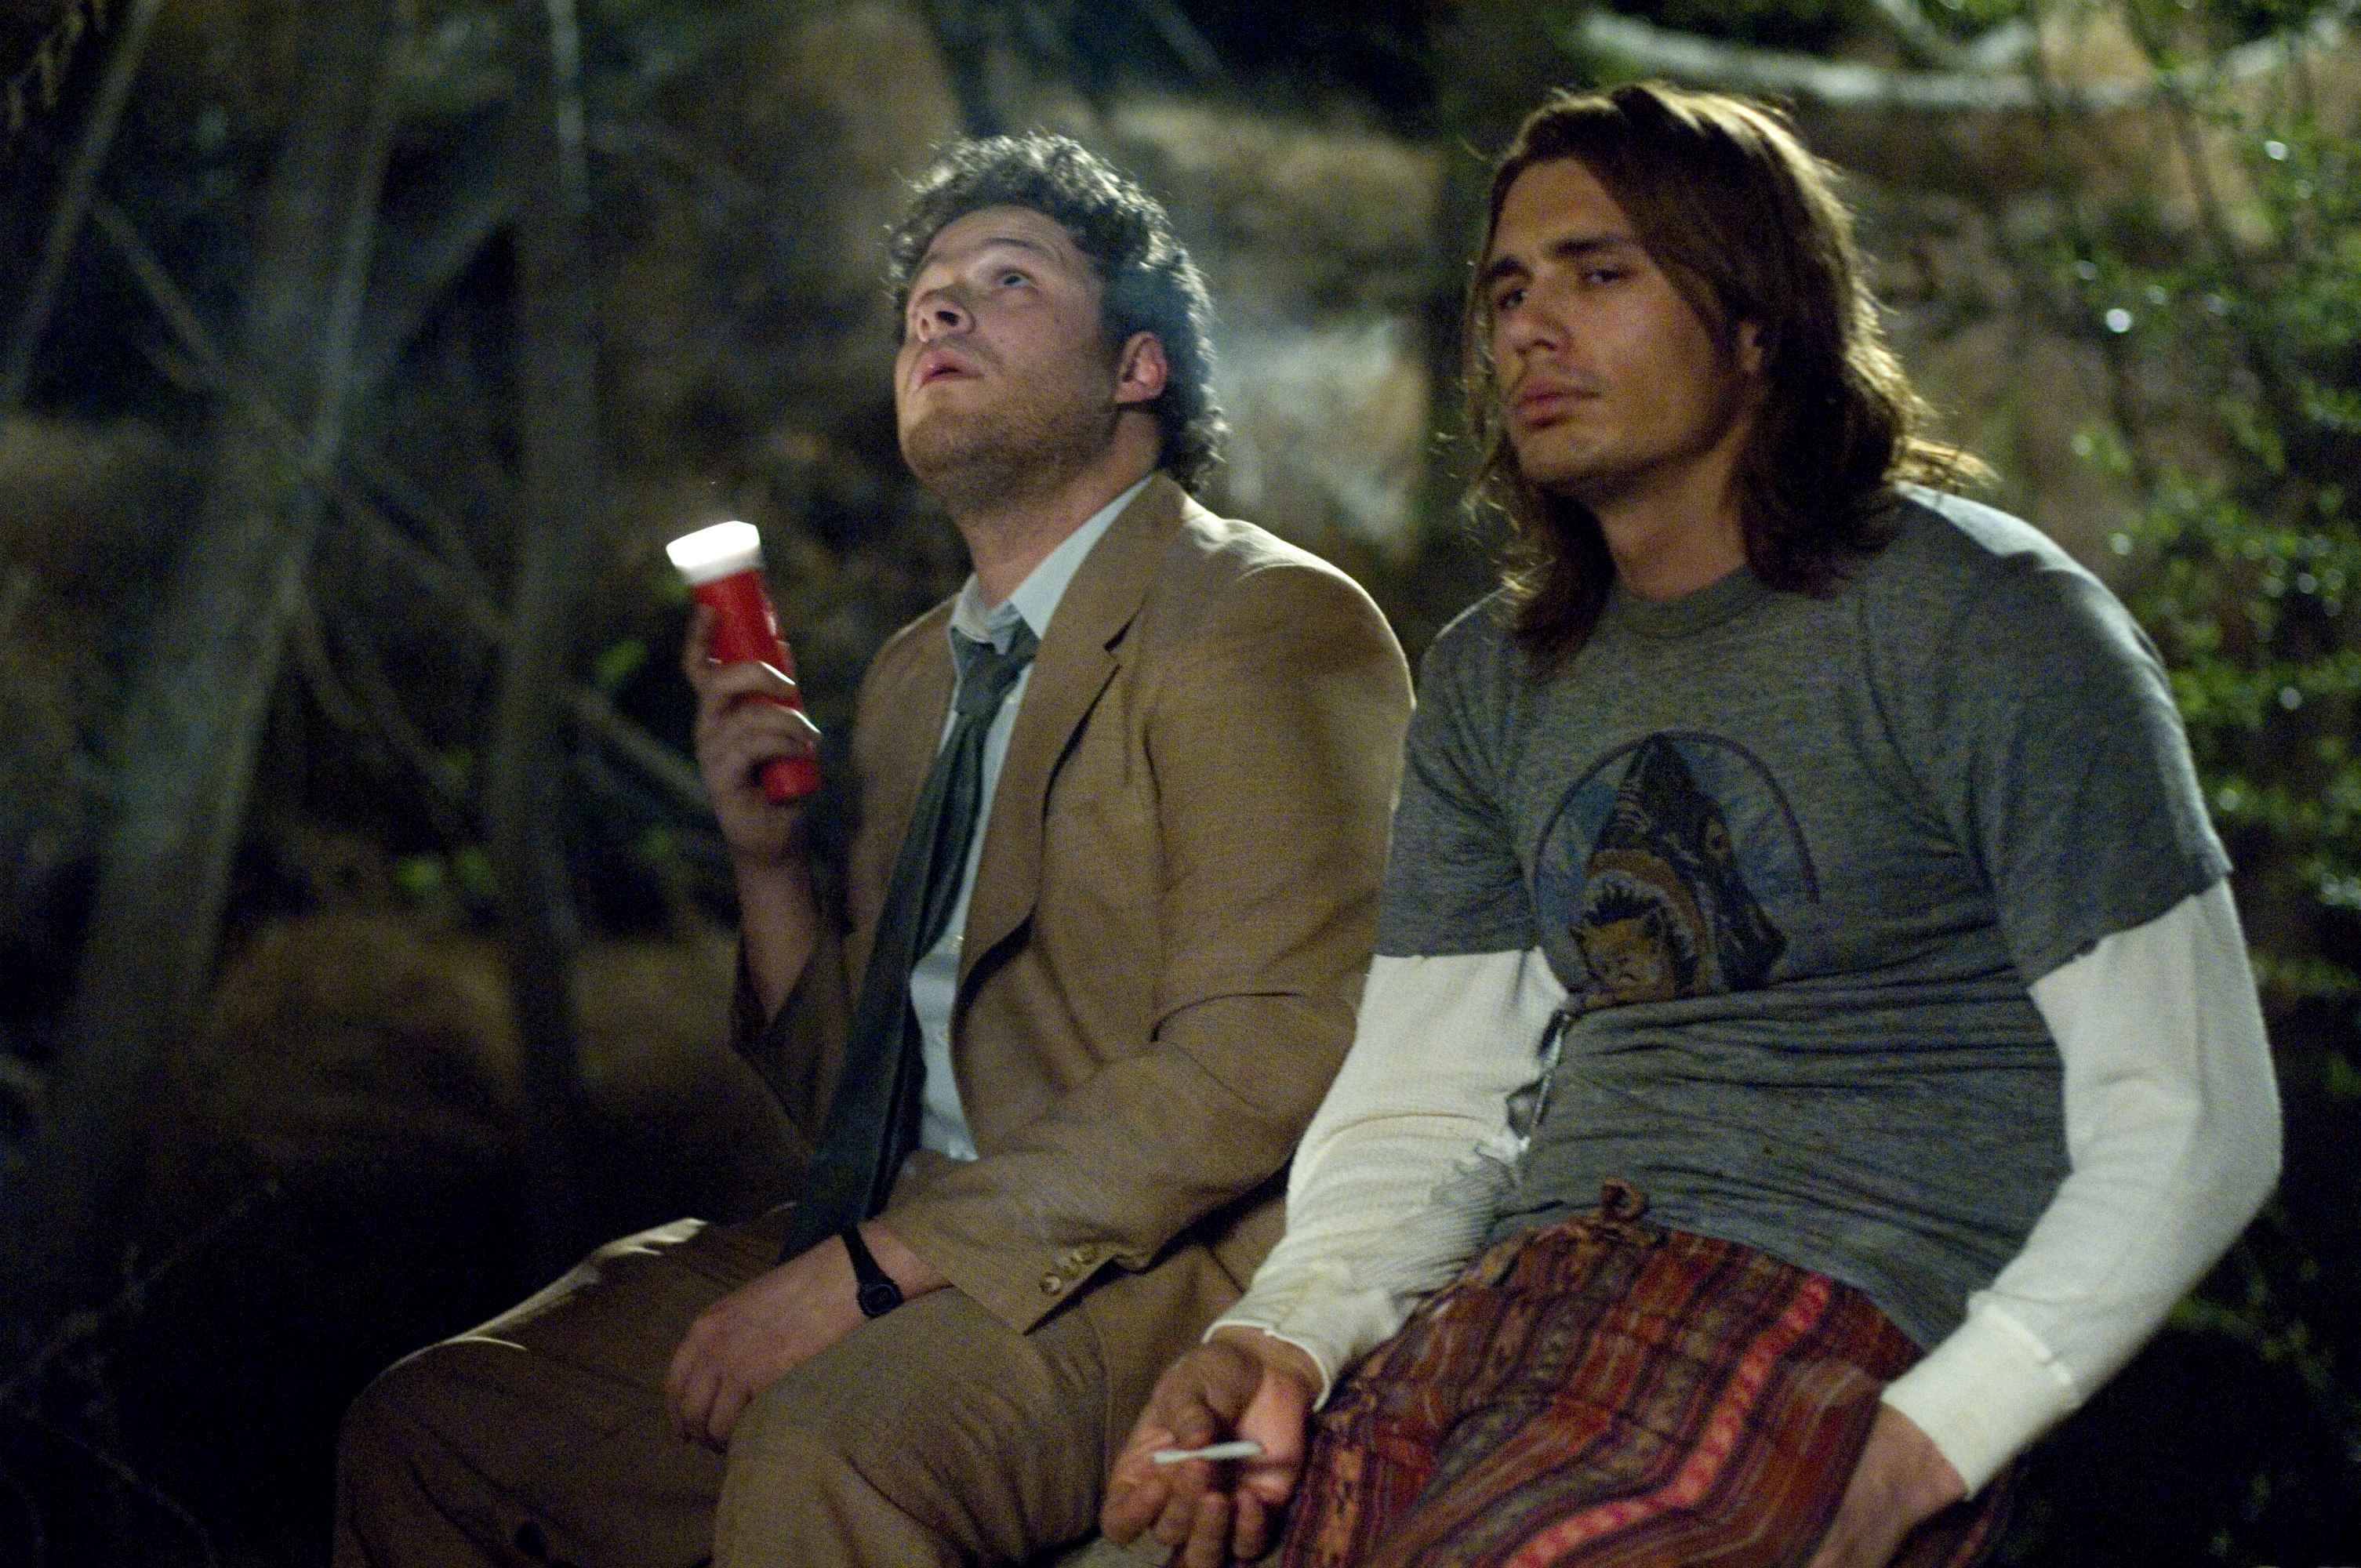 5. Pineapple Express: The heroes survived the final battle and formed a stronger friendship in the original ending. They survived the final battle in the alternate ending. But, they were violently gunned down after debating whether or not they would be able to kill all of the criminals. In a darker but more realistic ending, the two friends die together, holding hands.